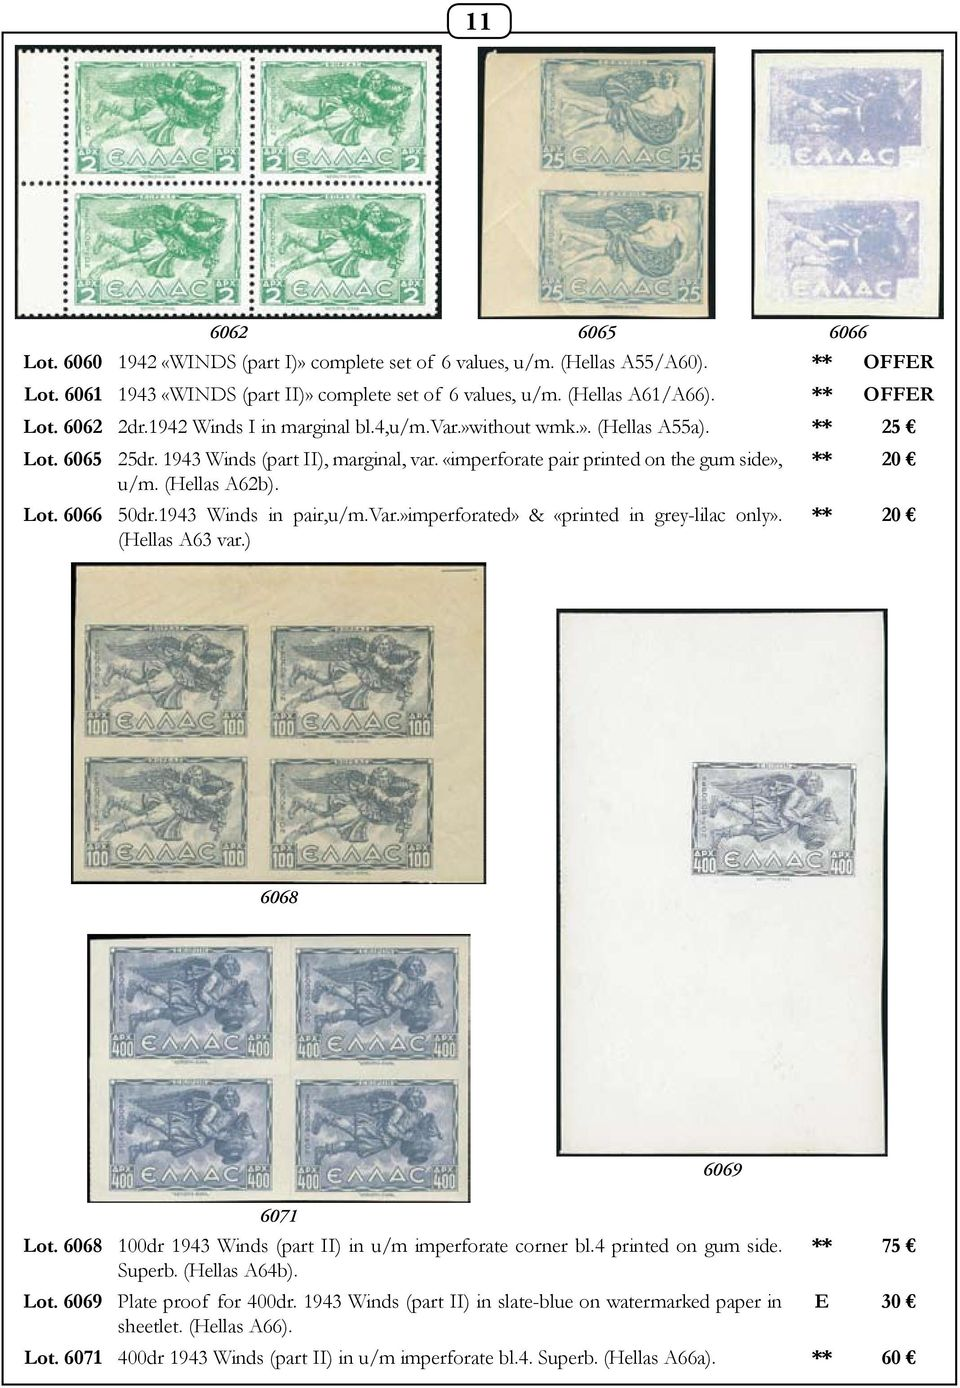 «imperforate pair printed on the gum side», ** 20 u/m. (Hellas A62b). Lot. 6066 50dr.1943 Winds in pair,u/m.var.»imperforated» & «printed in grey-lilac only». (Hellas A63 var.) ** 20 6068 6071 Lot.